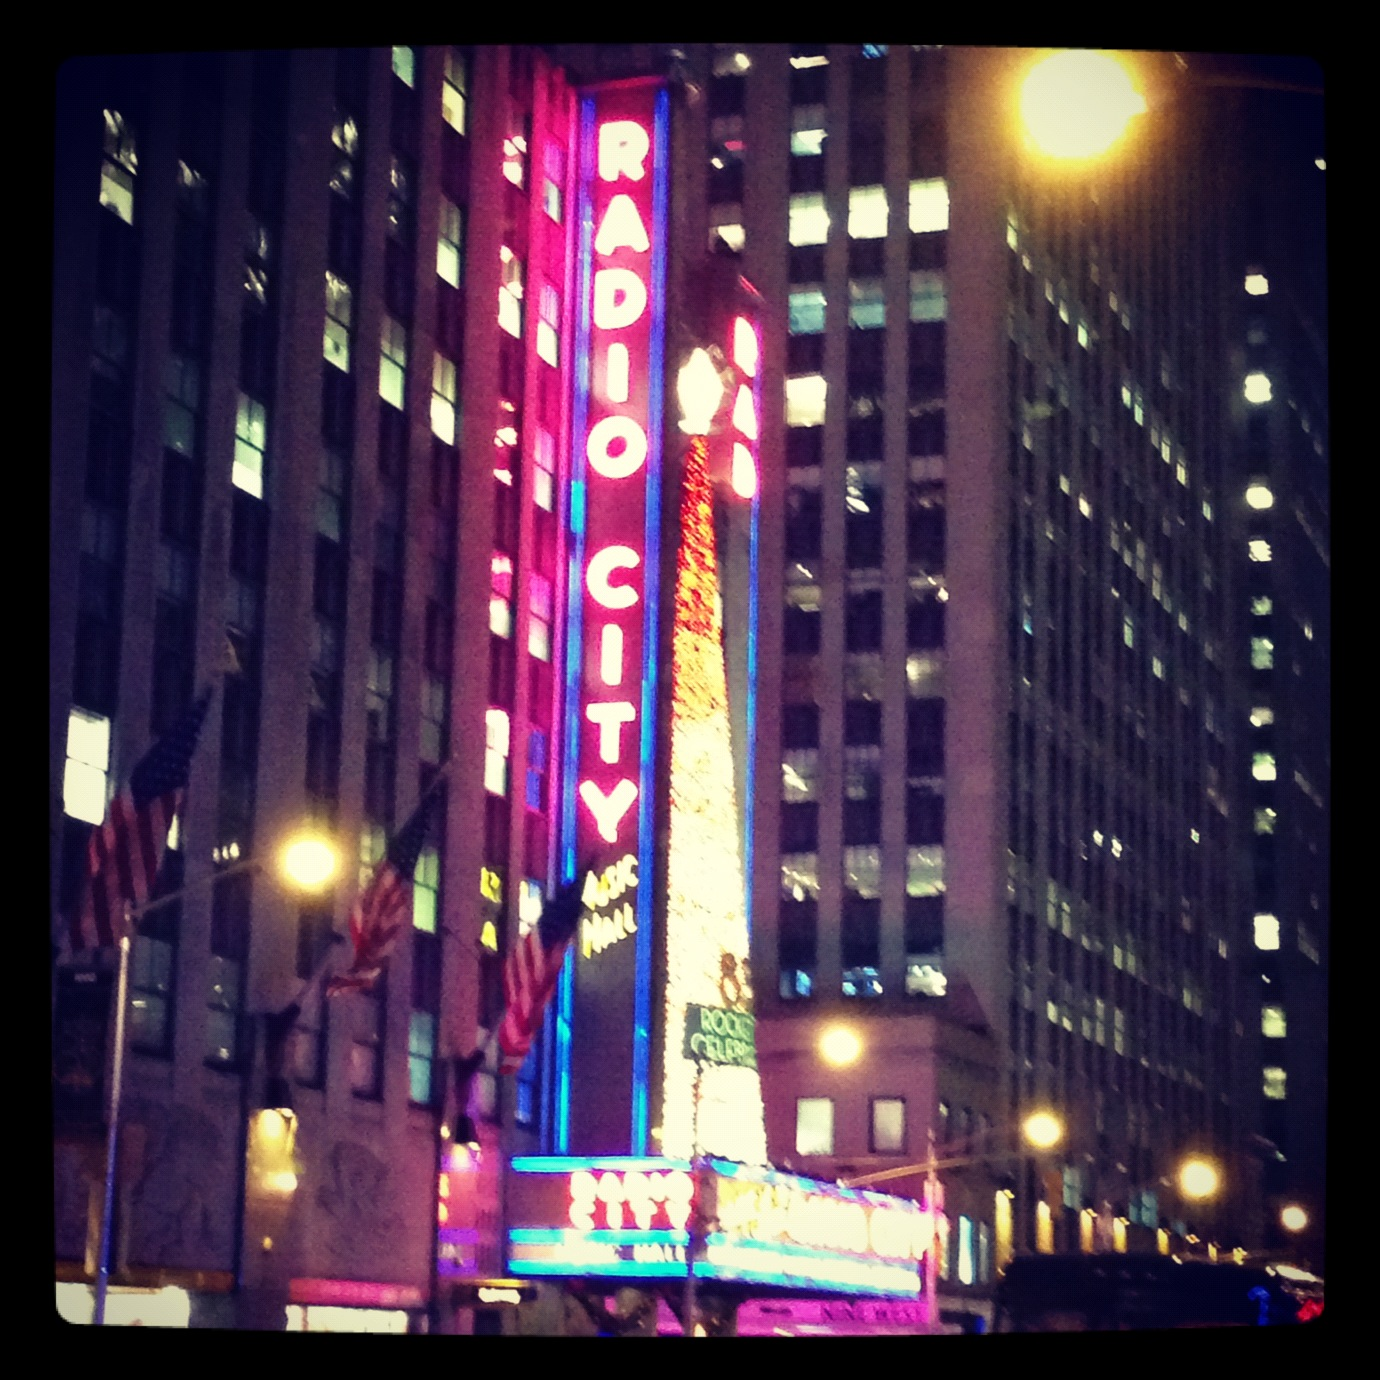 Radio City at Christmas